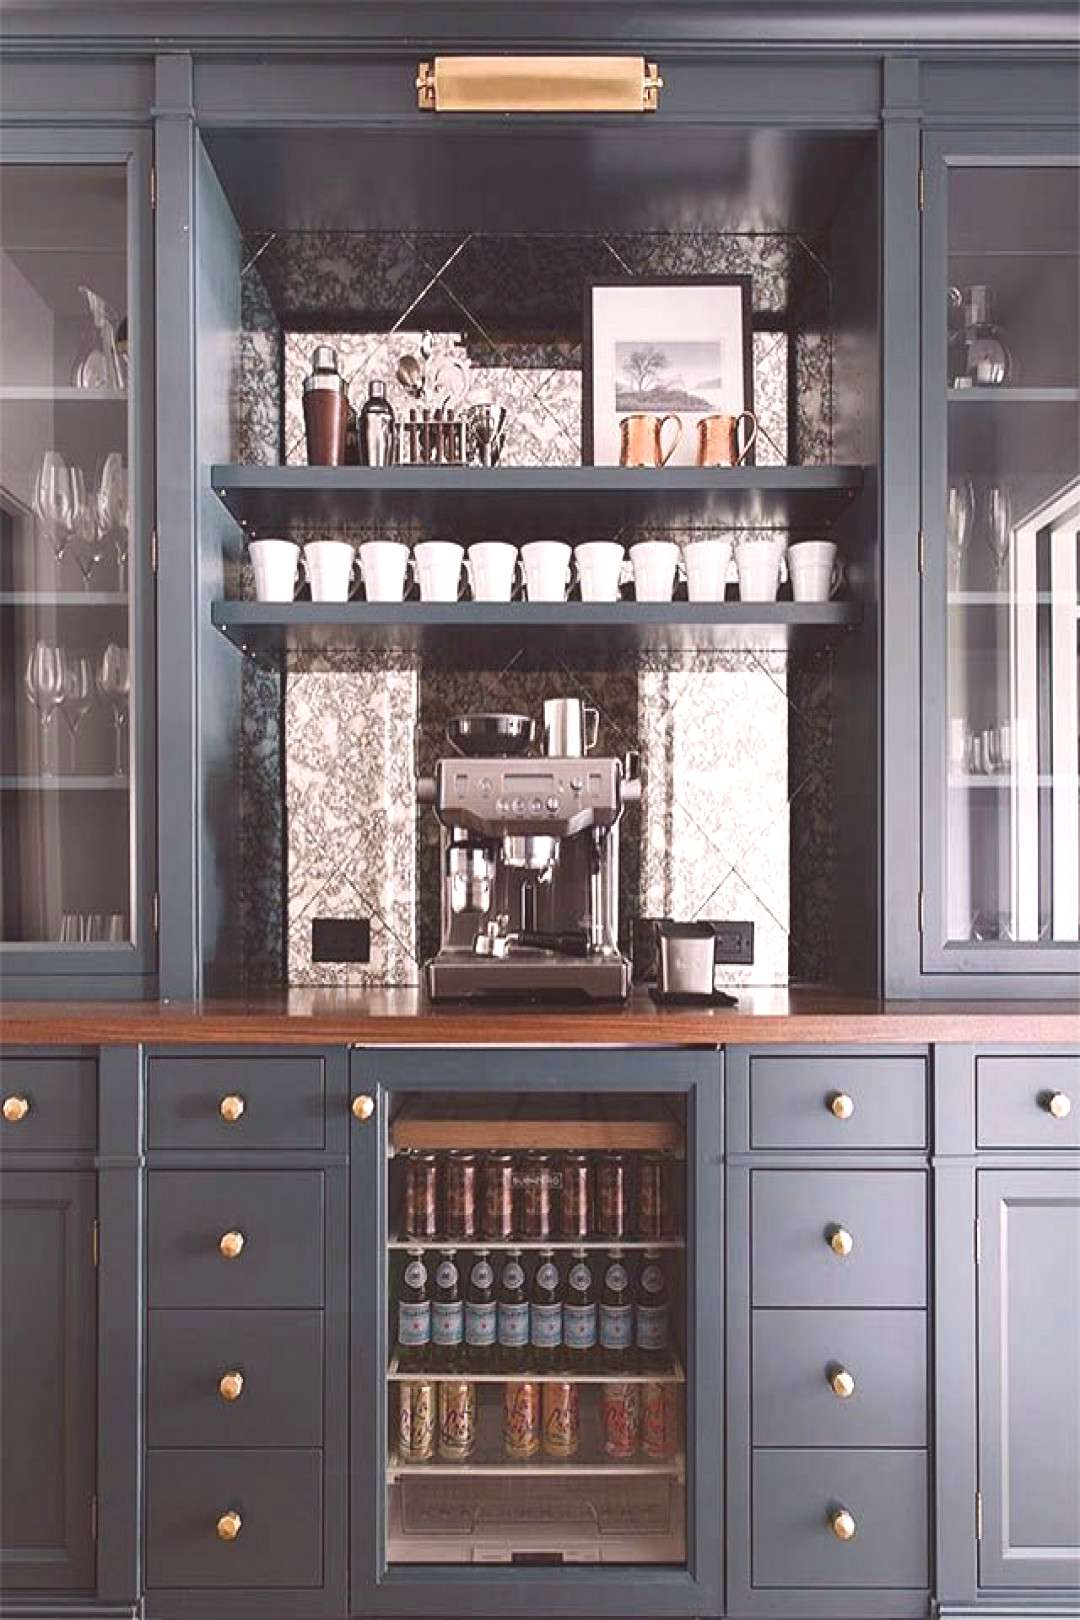 26 Home Coffee Station Ideas to Help You Quit Starbucks   Posh Pennies   - For the home